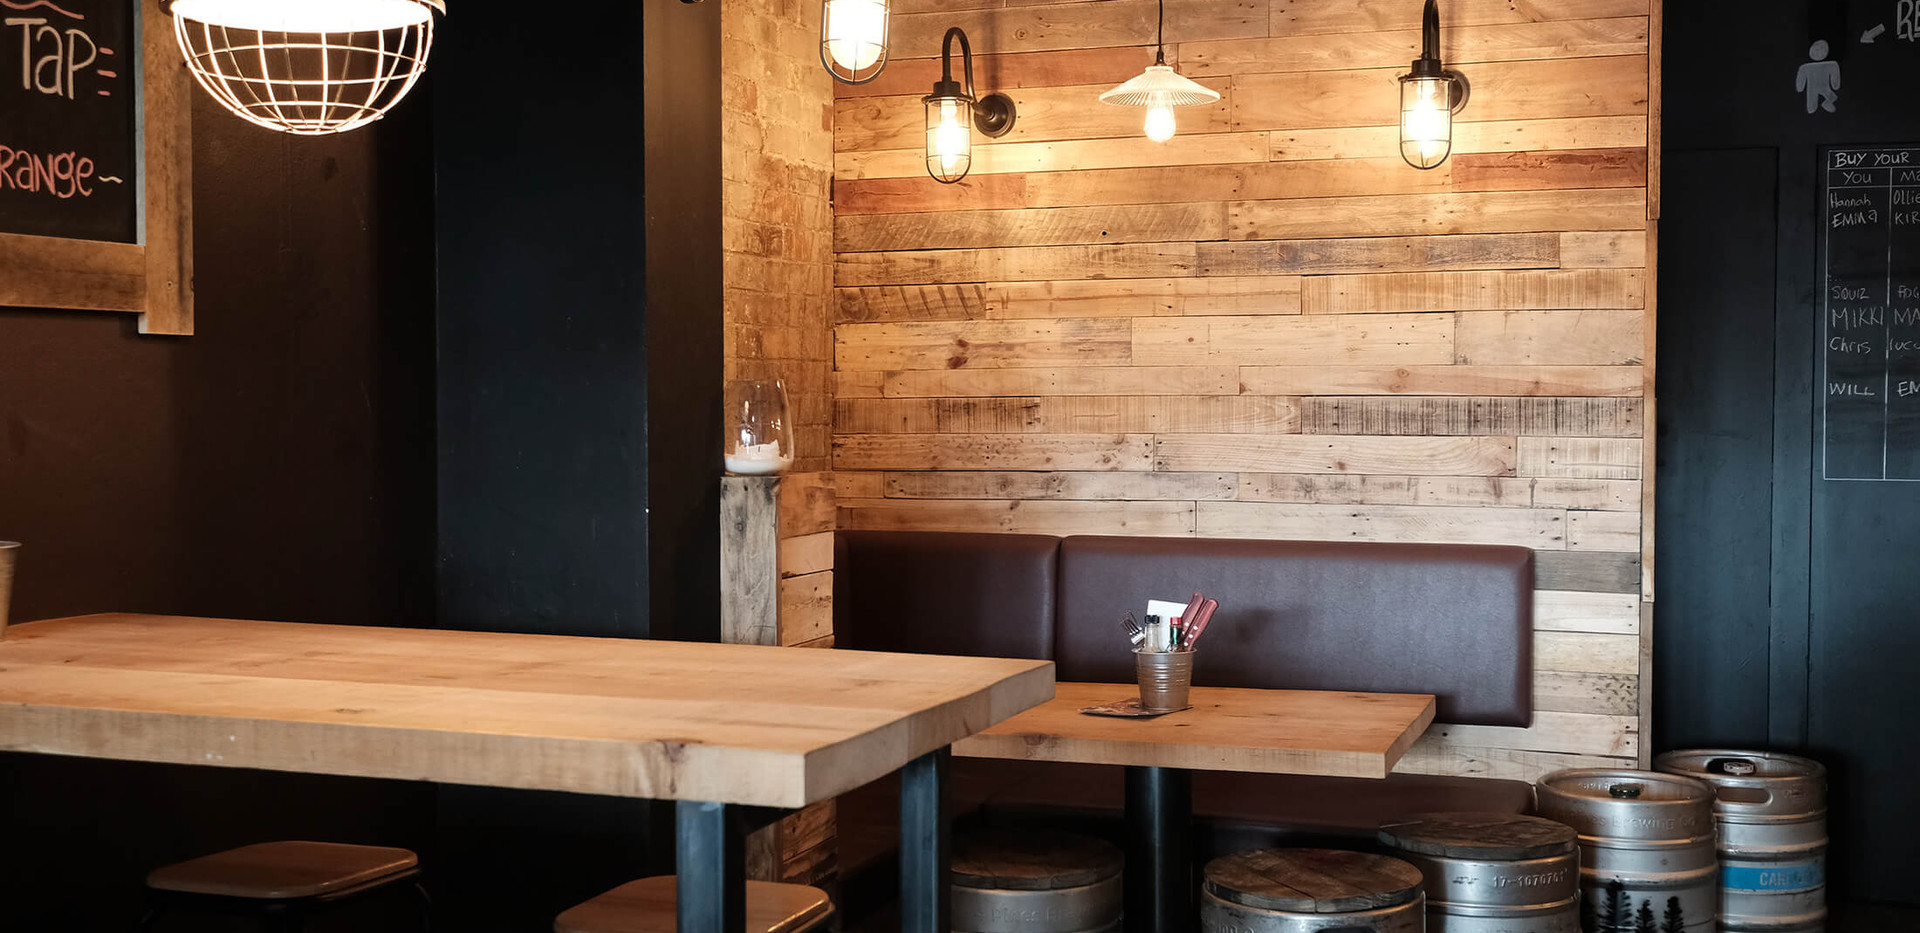 Four Pines Bar Surry Hills - bar design photo